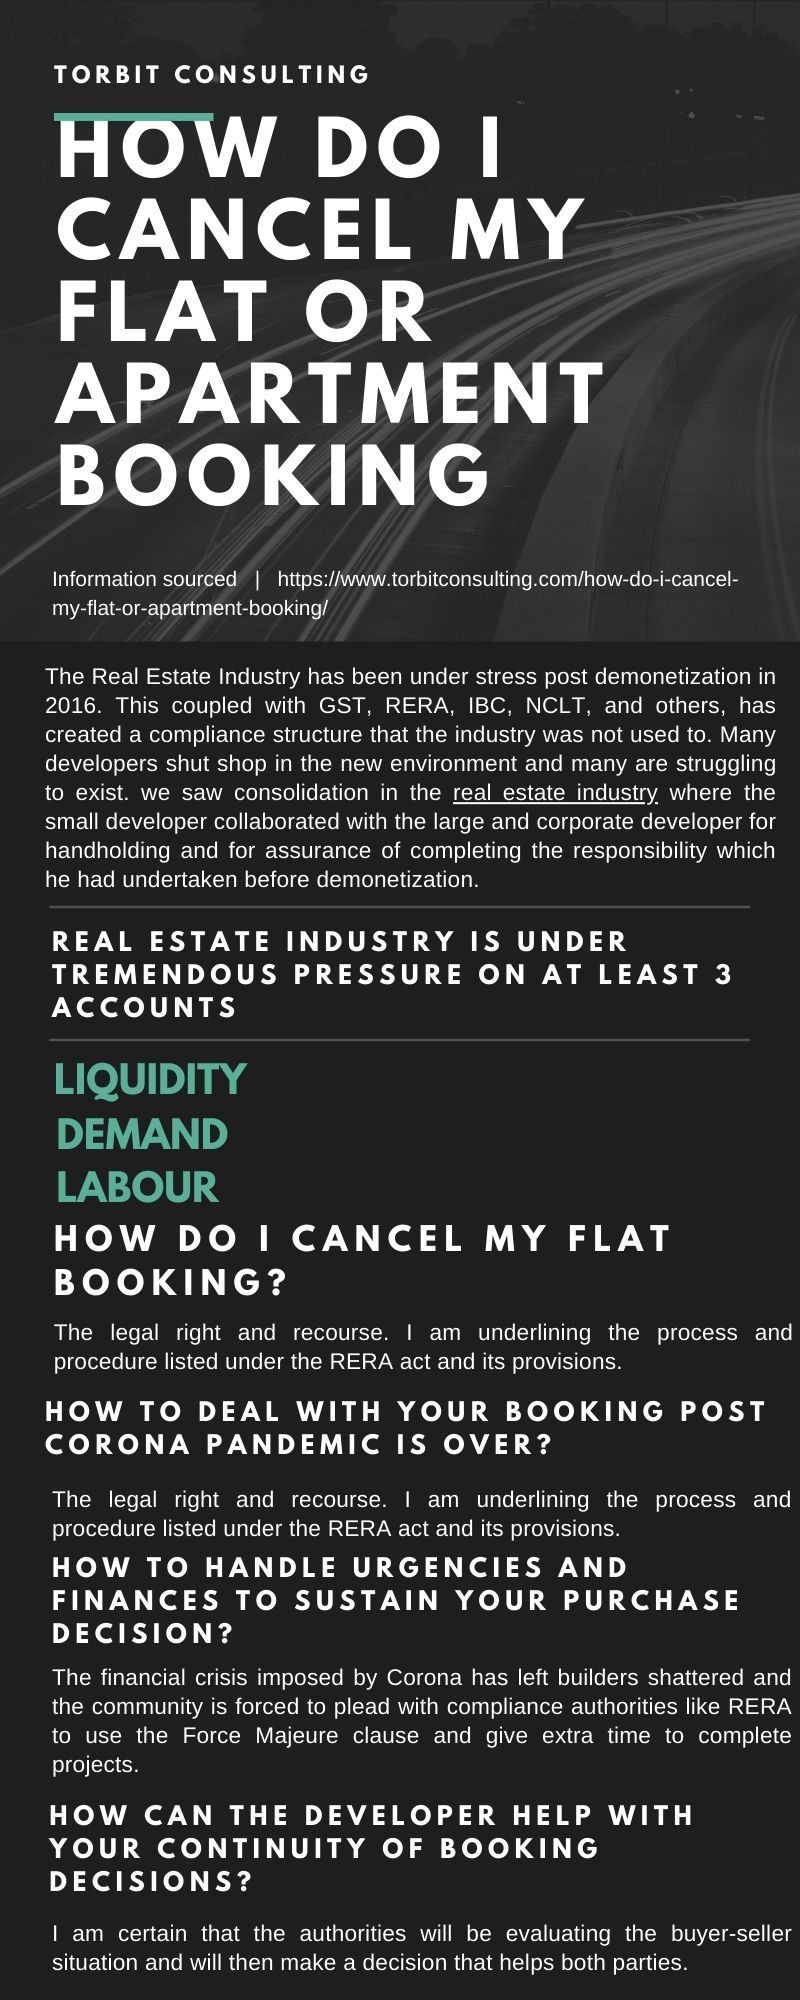 How do I cancel My Flat or Apartment Booking?